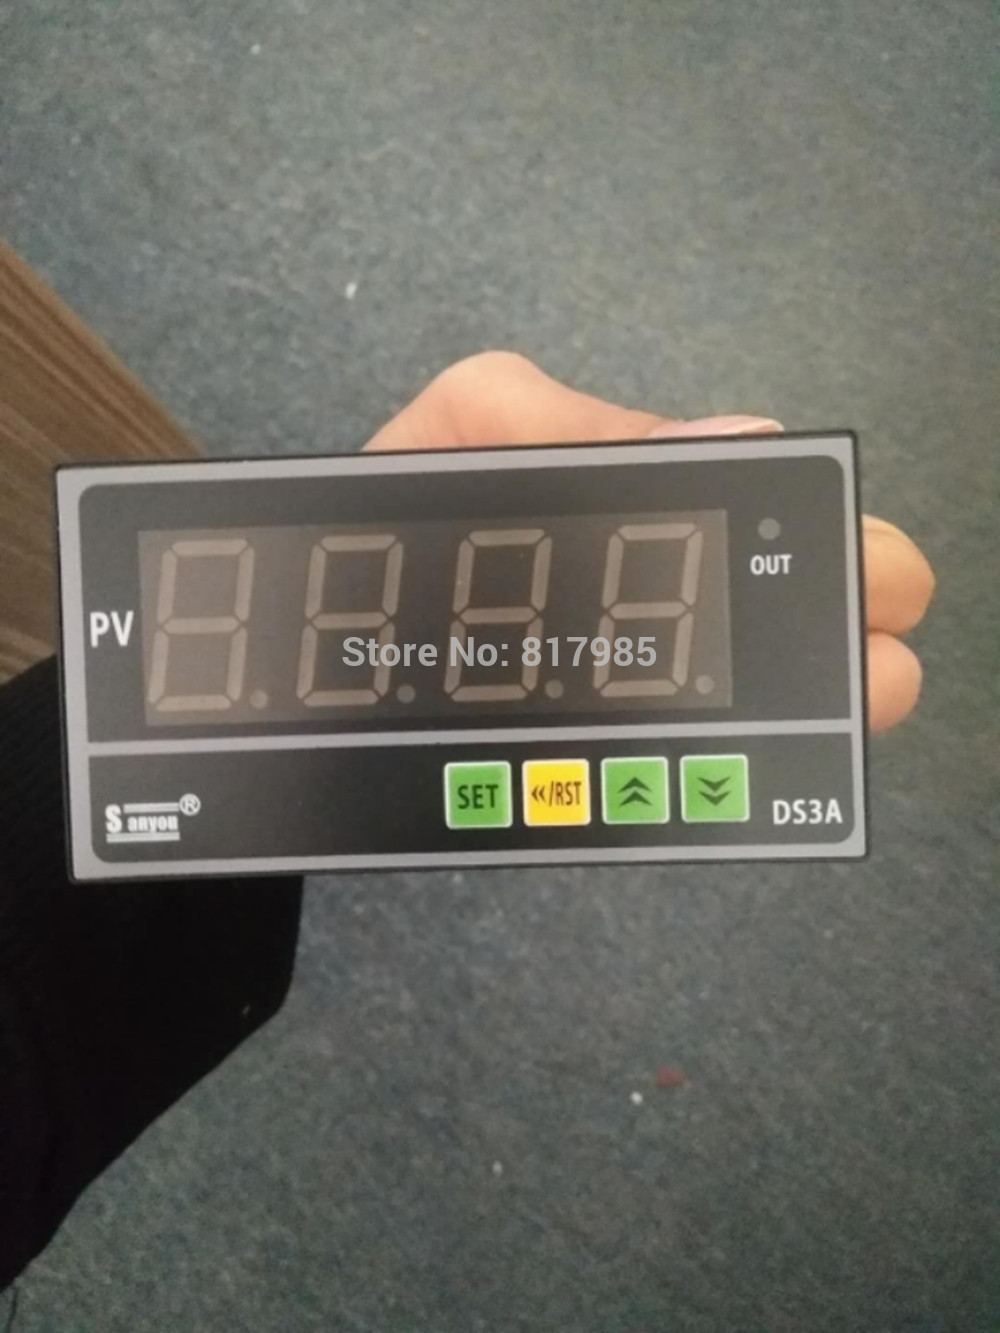 manual digital readout input 165 264vac tension controller output 24vdc 4a for paper converting and other industry machine simple dro one axis display single axis digital readout for injection machine and other machines